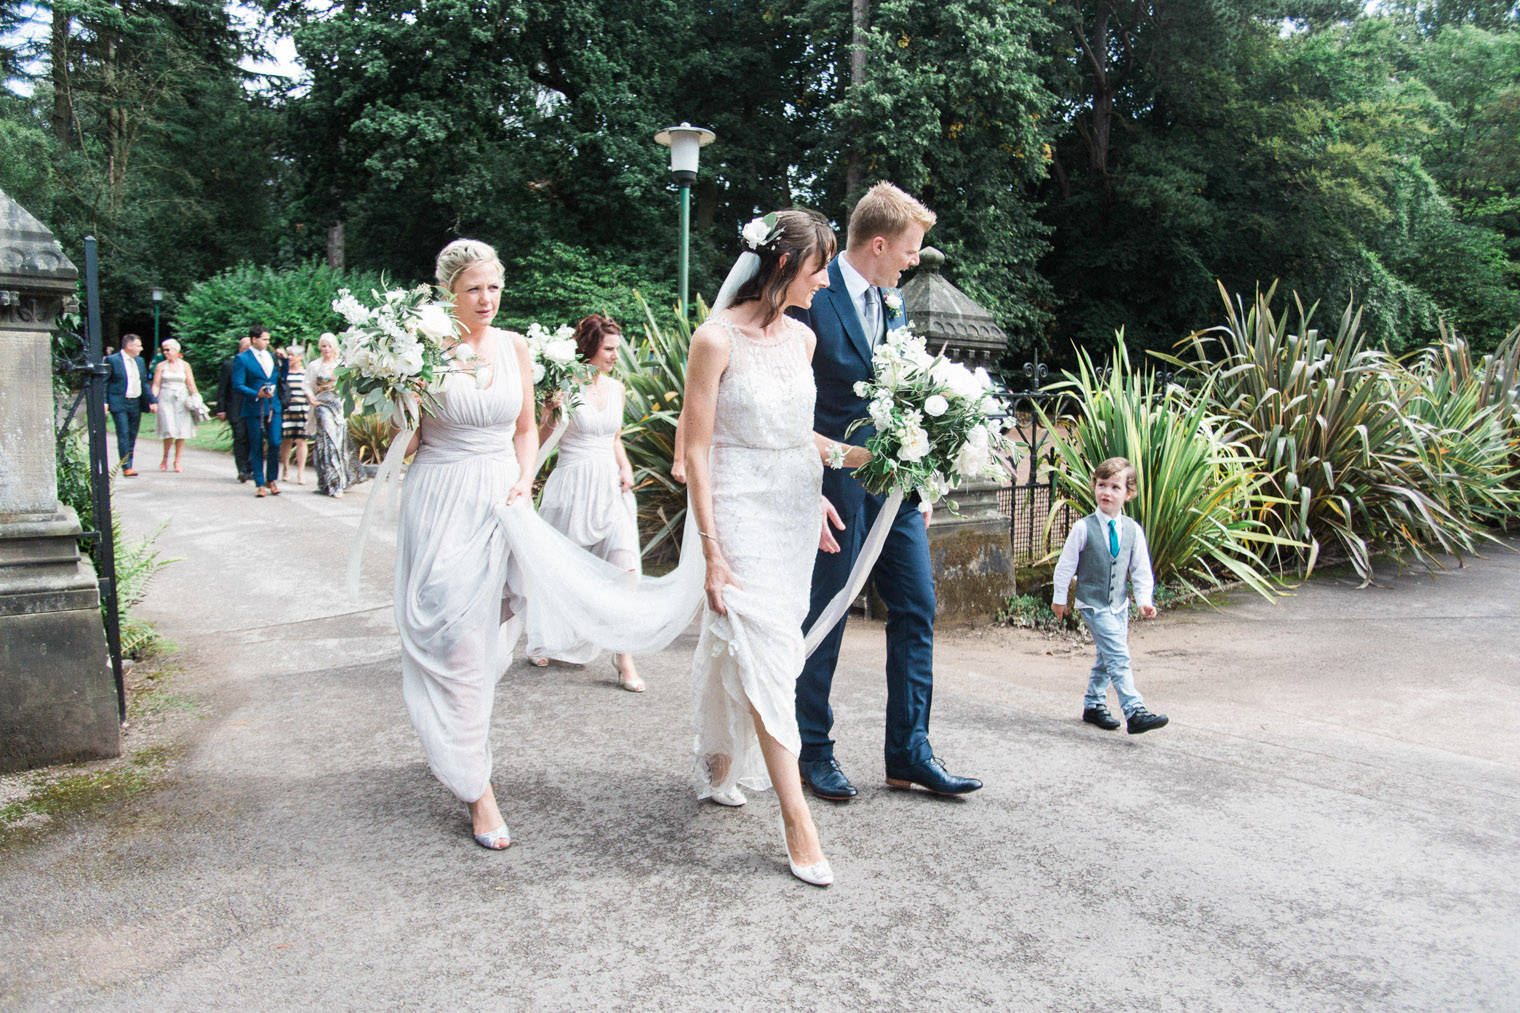 lifestyle-blogger-claire-wainwright-of-the-green-eyed-girl-shares-her-wedding-30